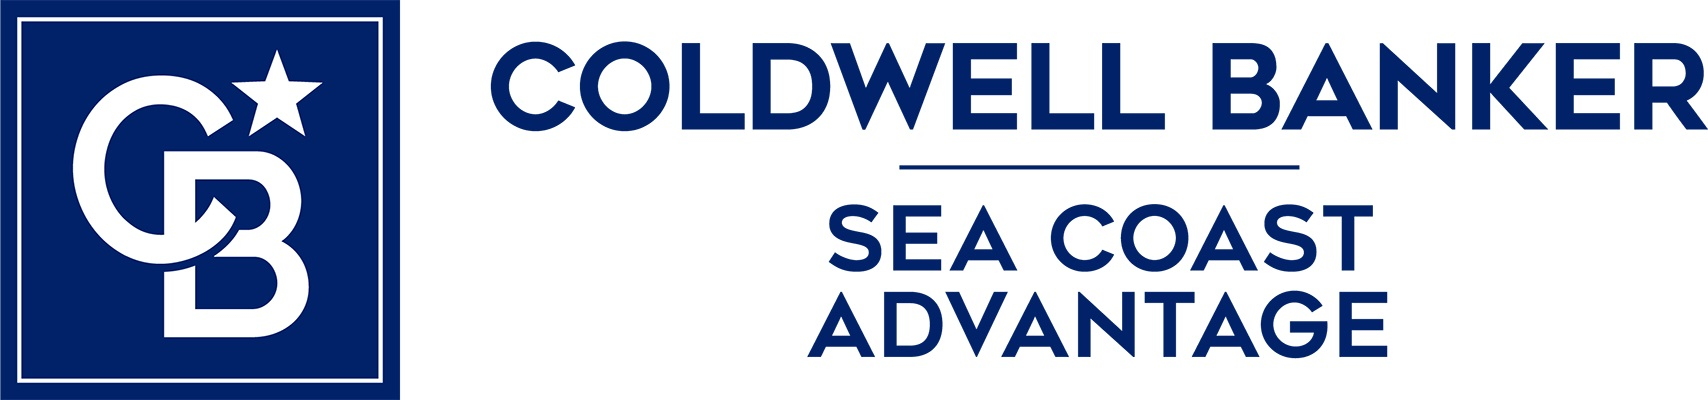 Melissa Dunn - Coldwell Banker Sea Coast Advantage Realty